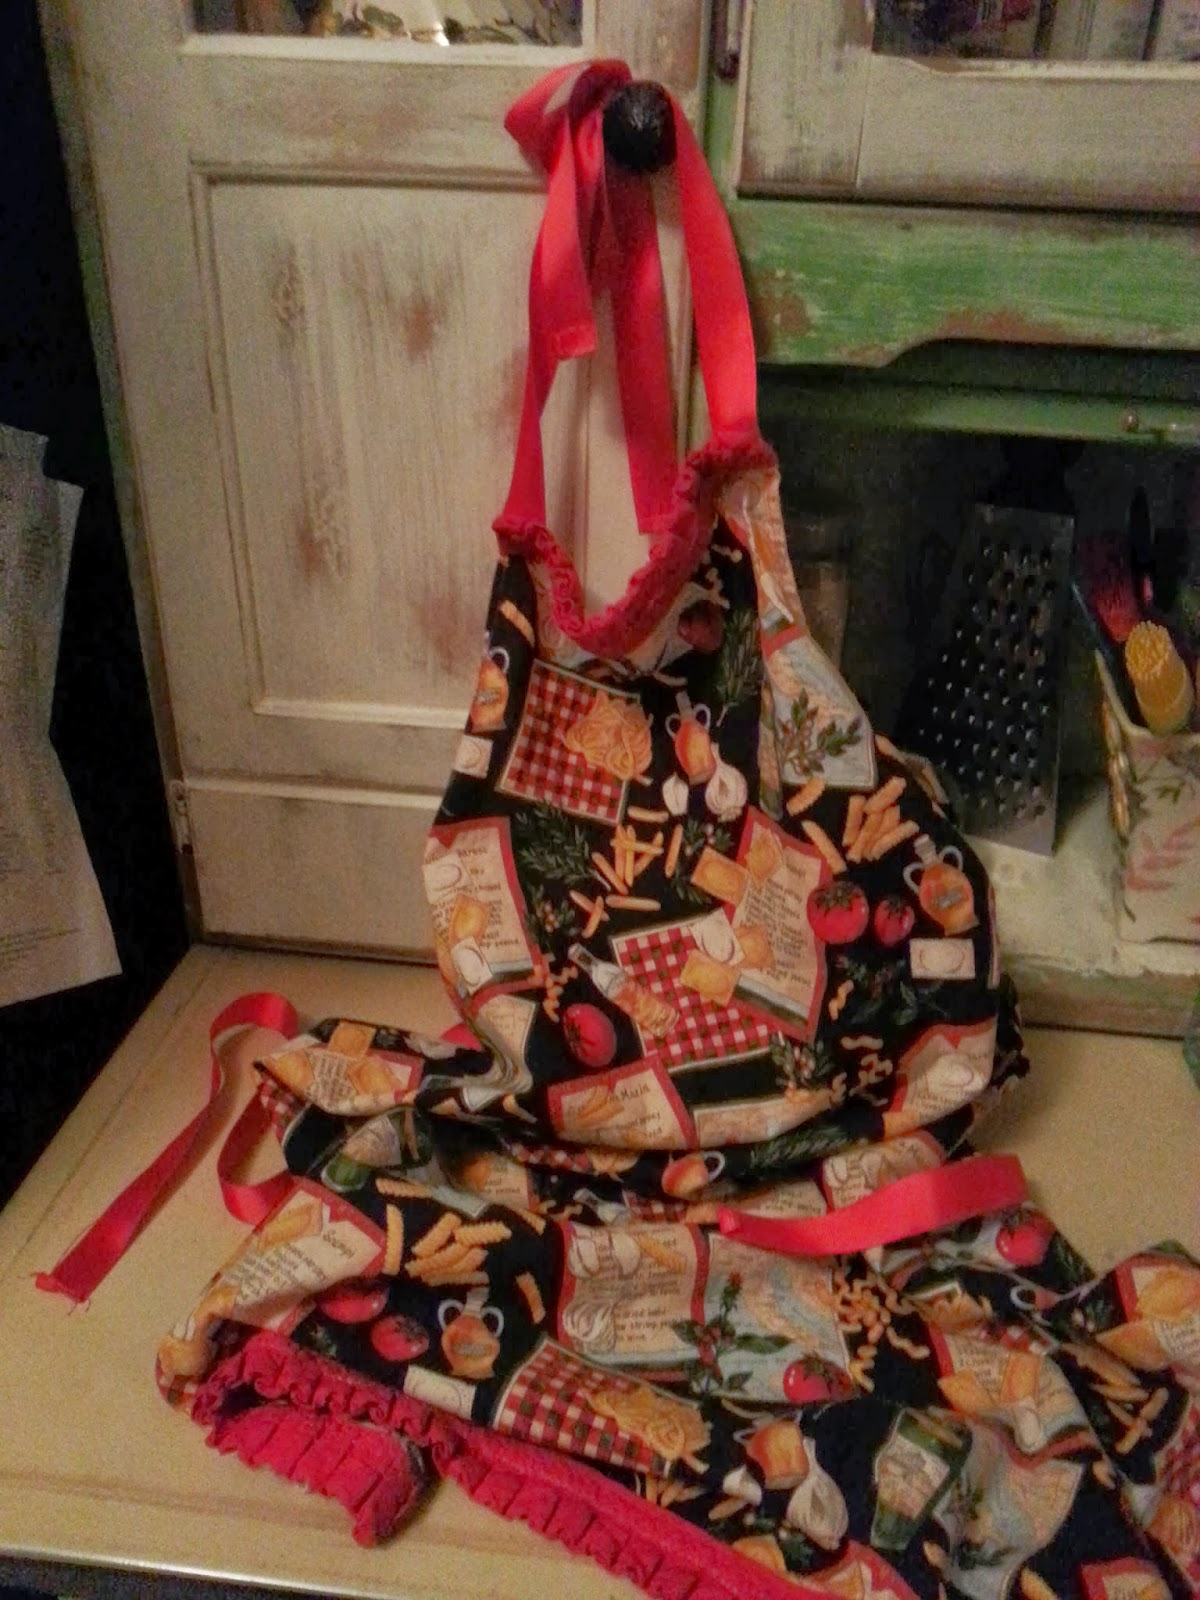 Homemade gifts are better for Christmas   Navigating Hectivity by Micki Bare